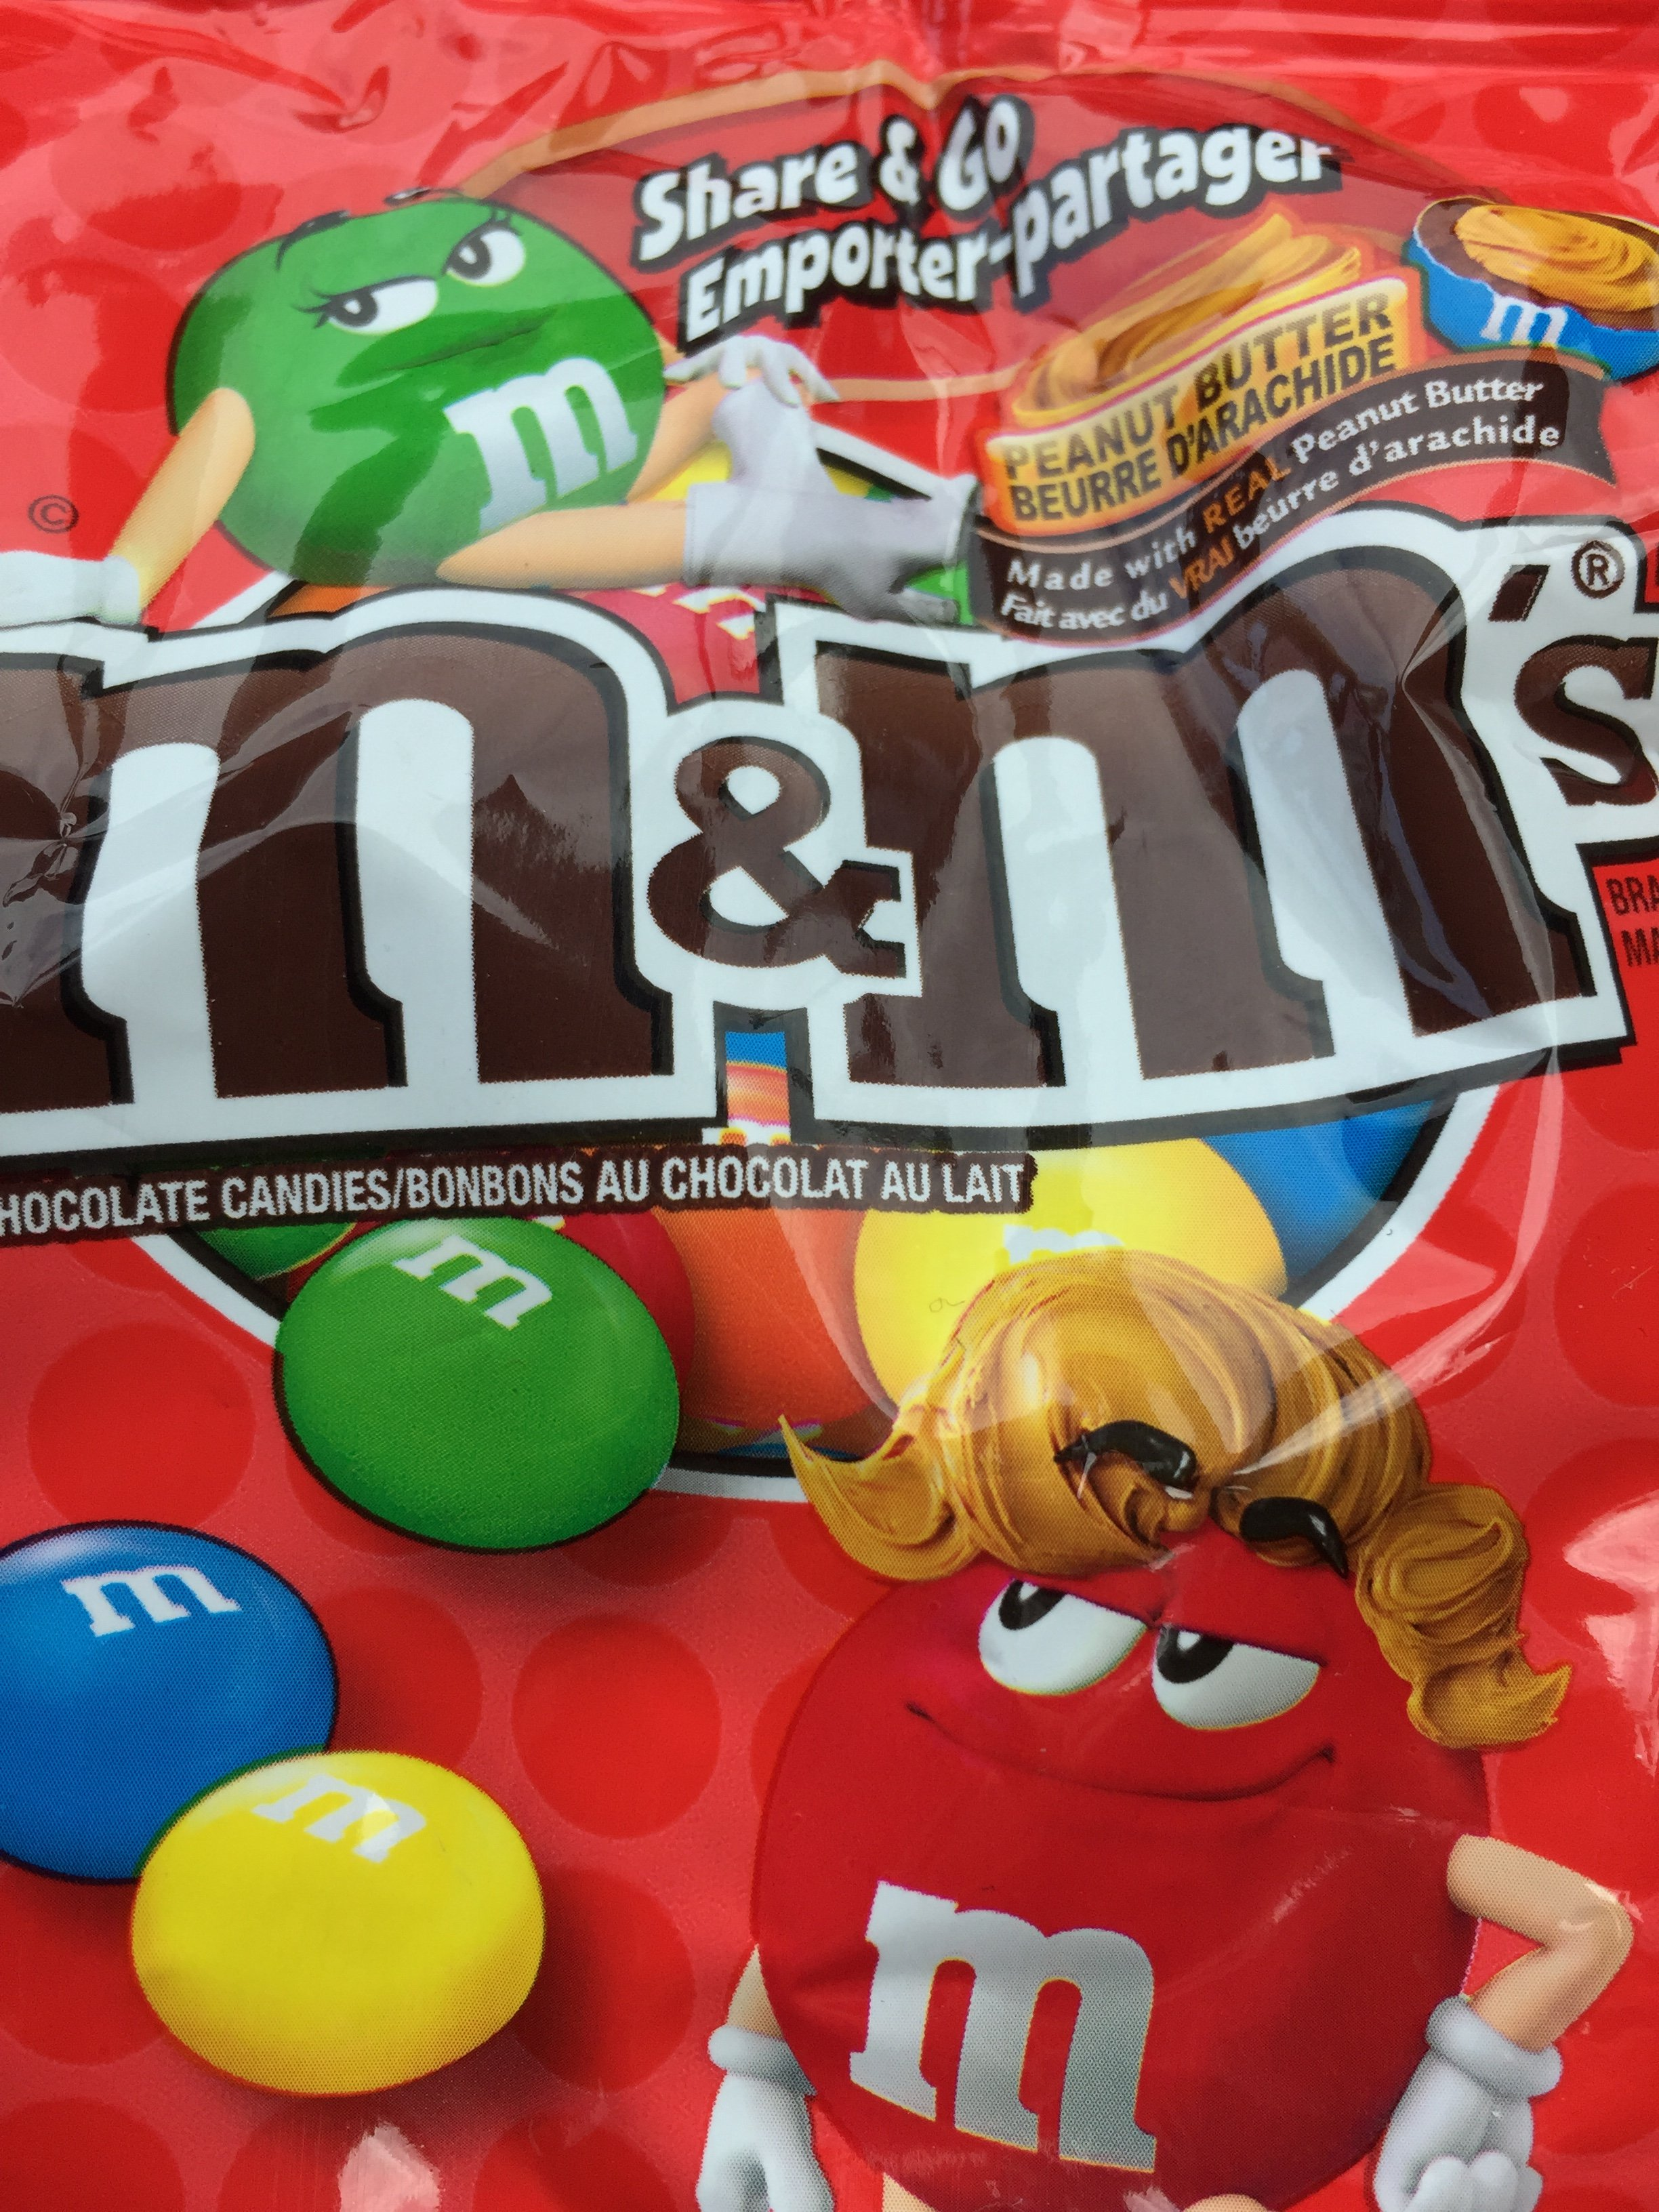 Peanut Butter M&Ms. Not available in the UK